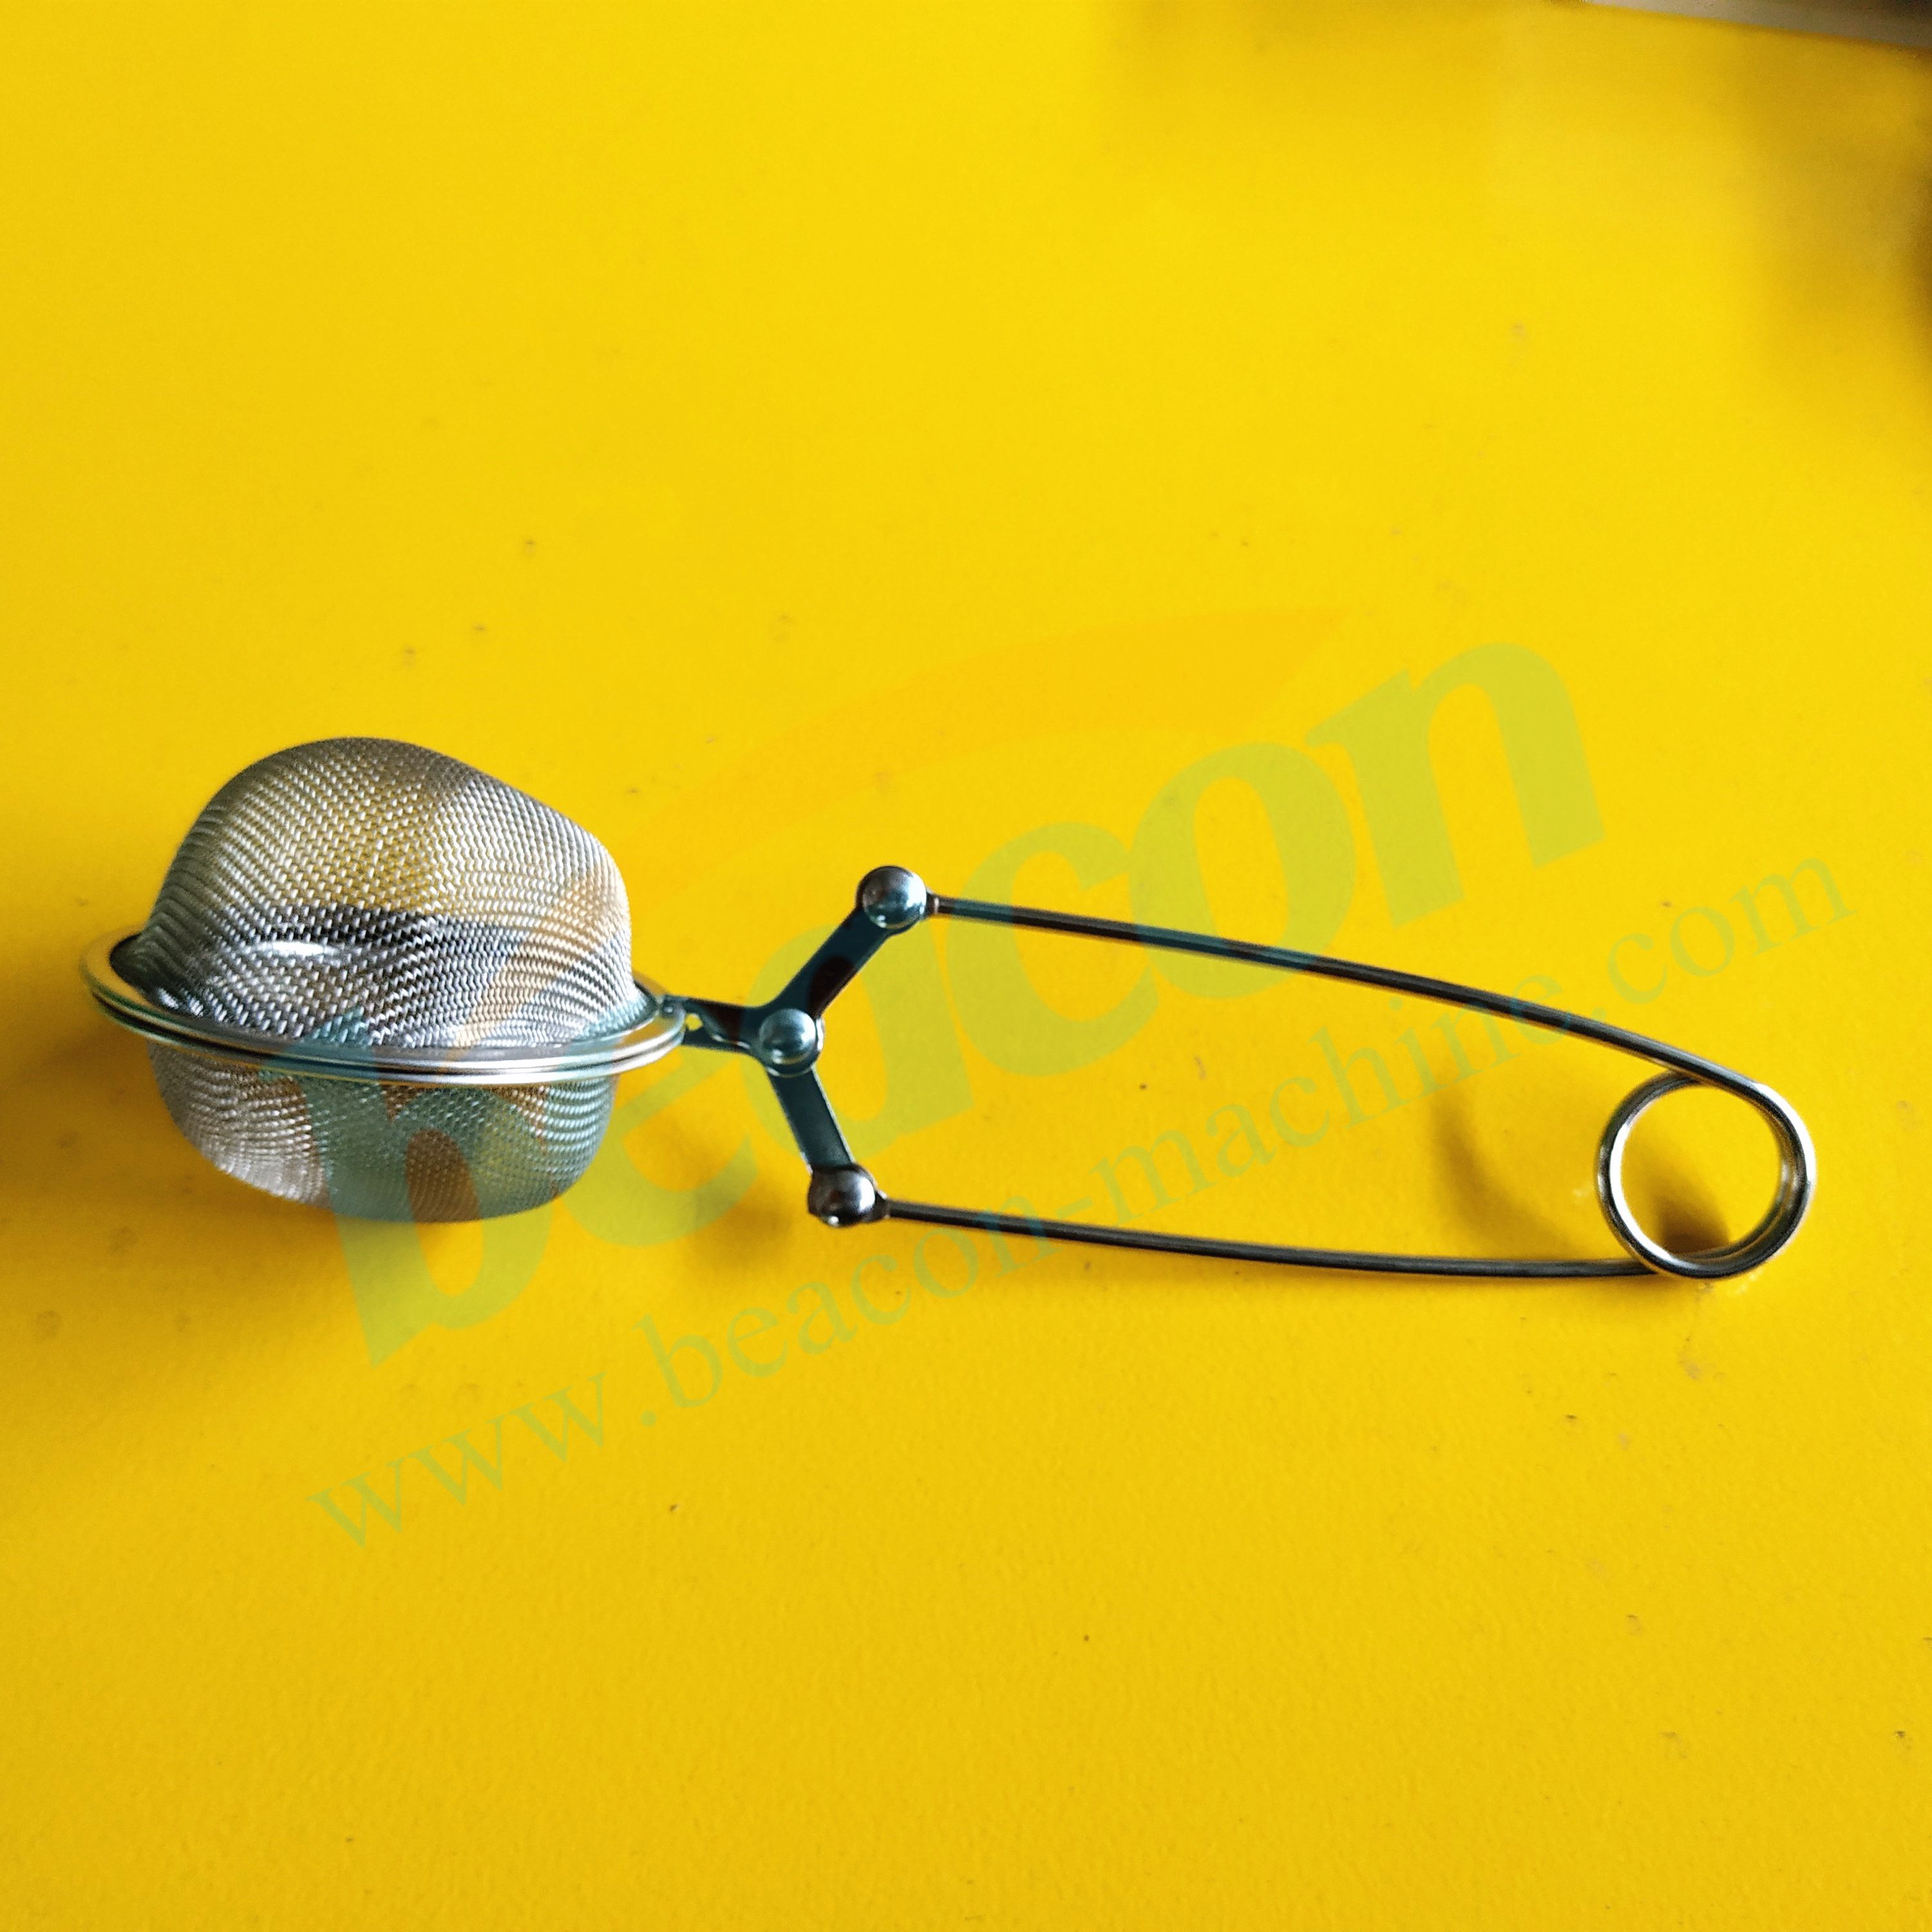 Small parts cleaning filter tools for injector cleaning